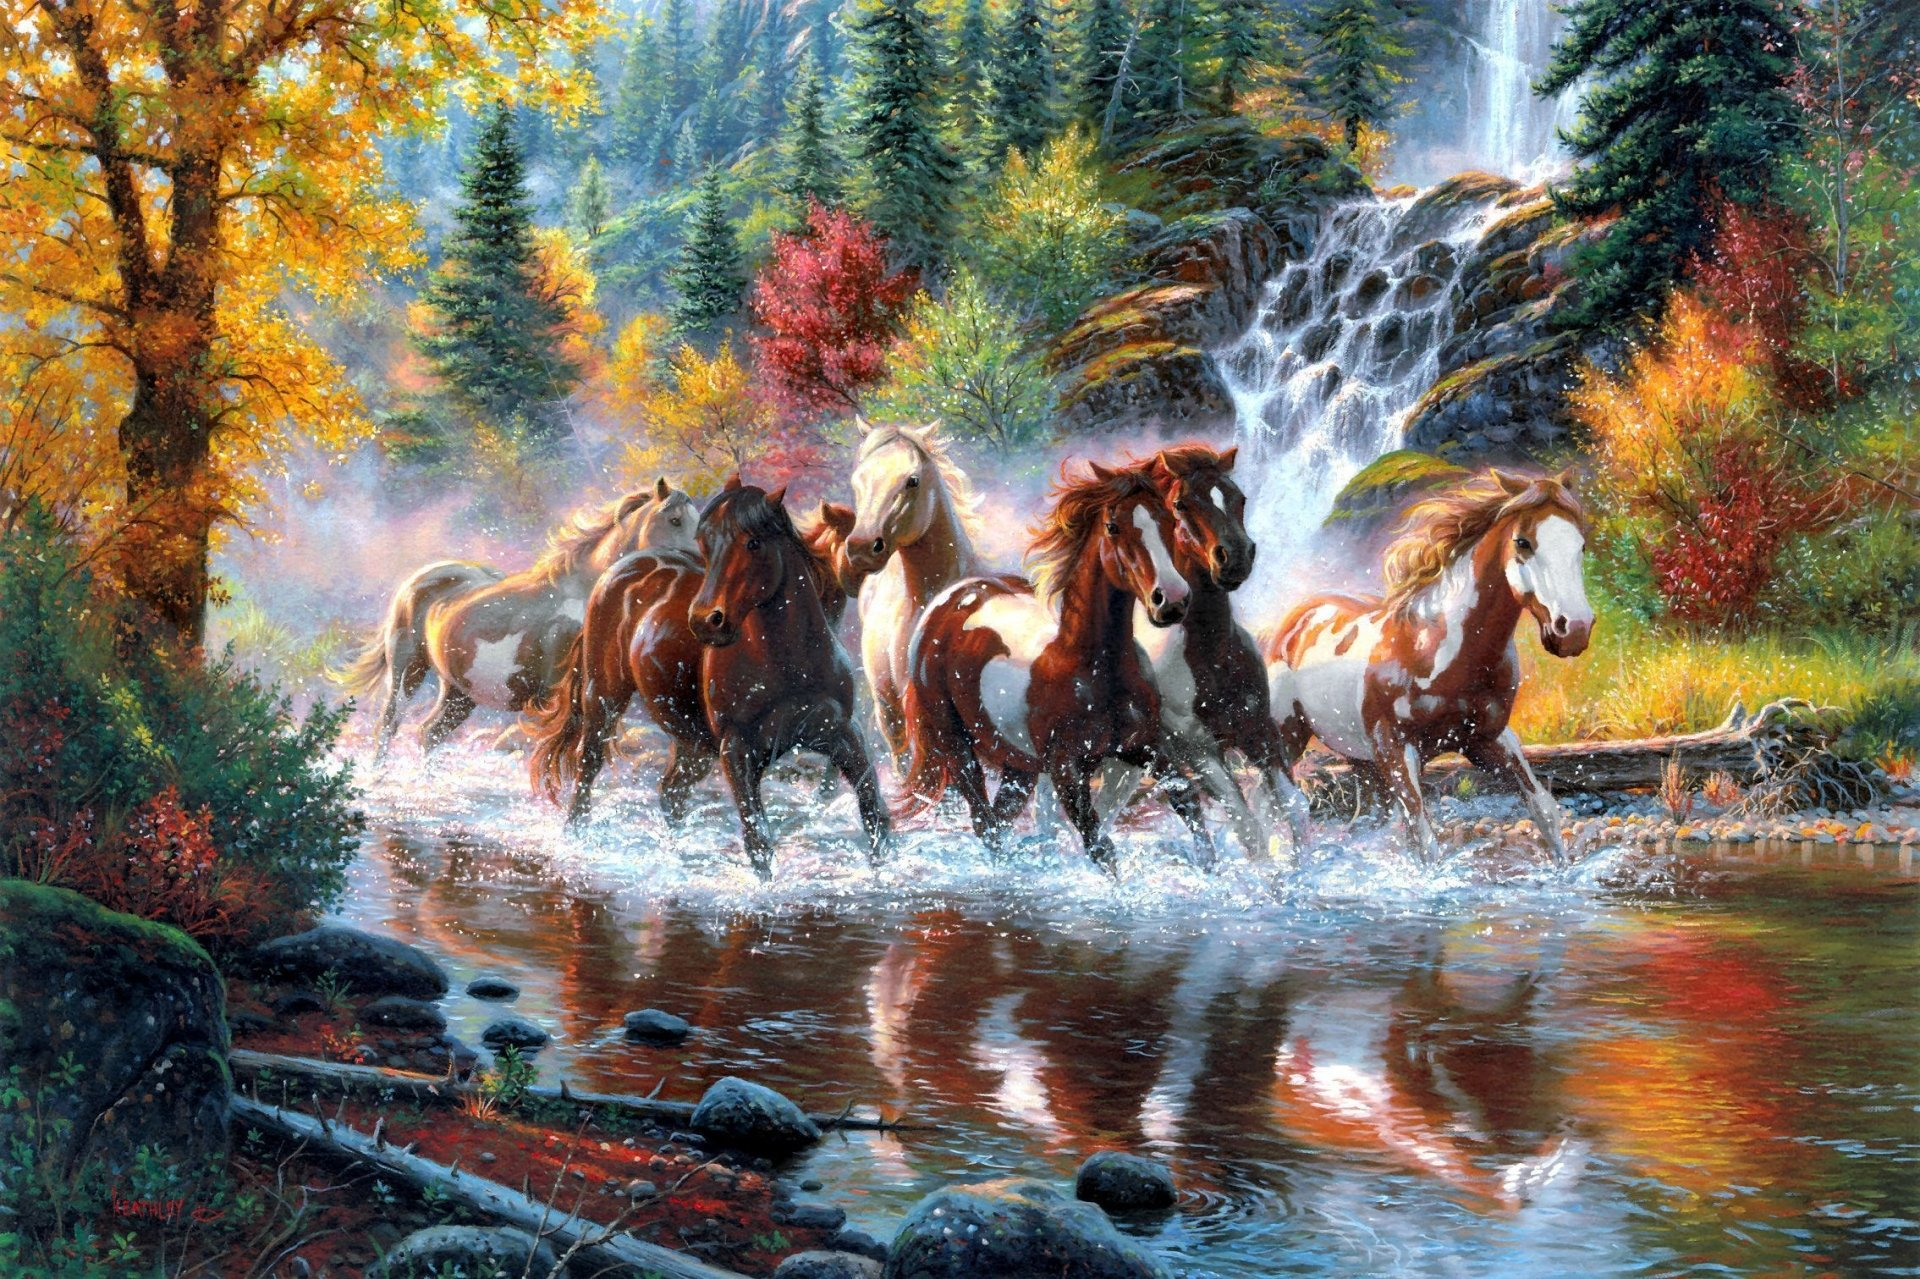 Animal - Artistic  Scenic Stream Forest Waterfall Fall Season Mountain Horse Wallpaper